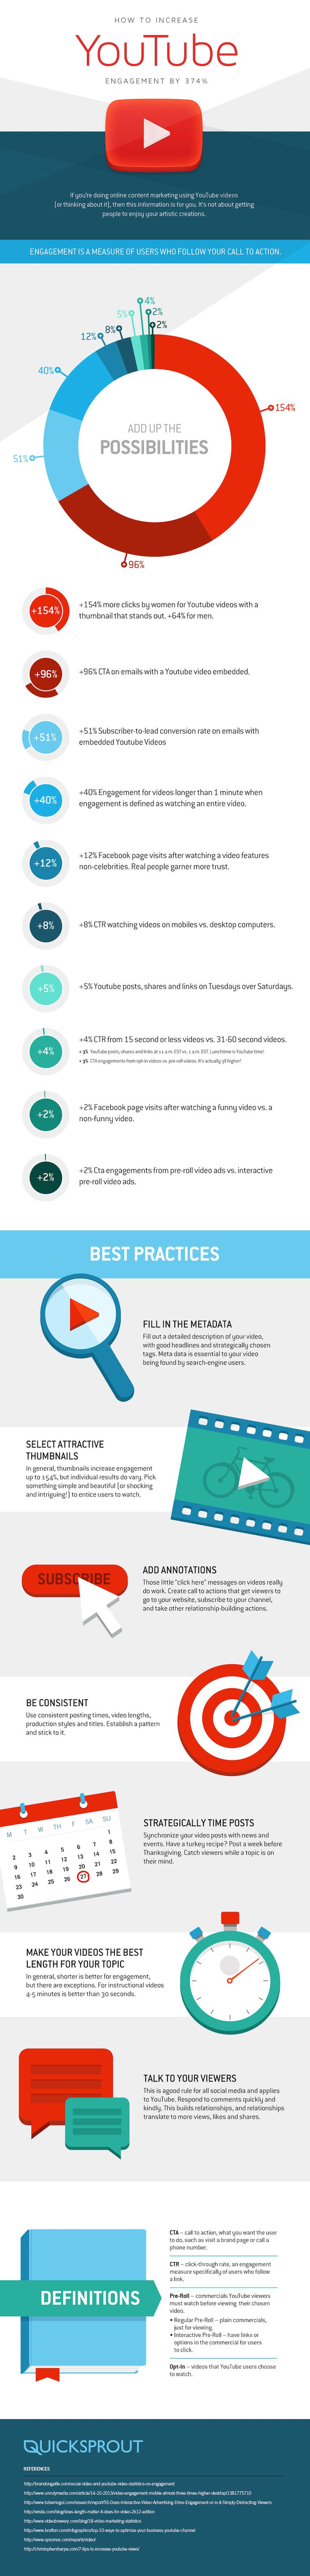 How to Increase YouTube Engagement [Infographic]  via Quicksprout h/t to @Francis Ouellet http://socialmouths.com/blog/2014/06/09/youtube-engagement/